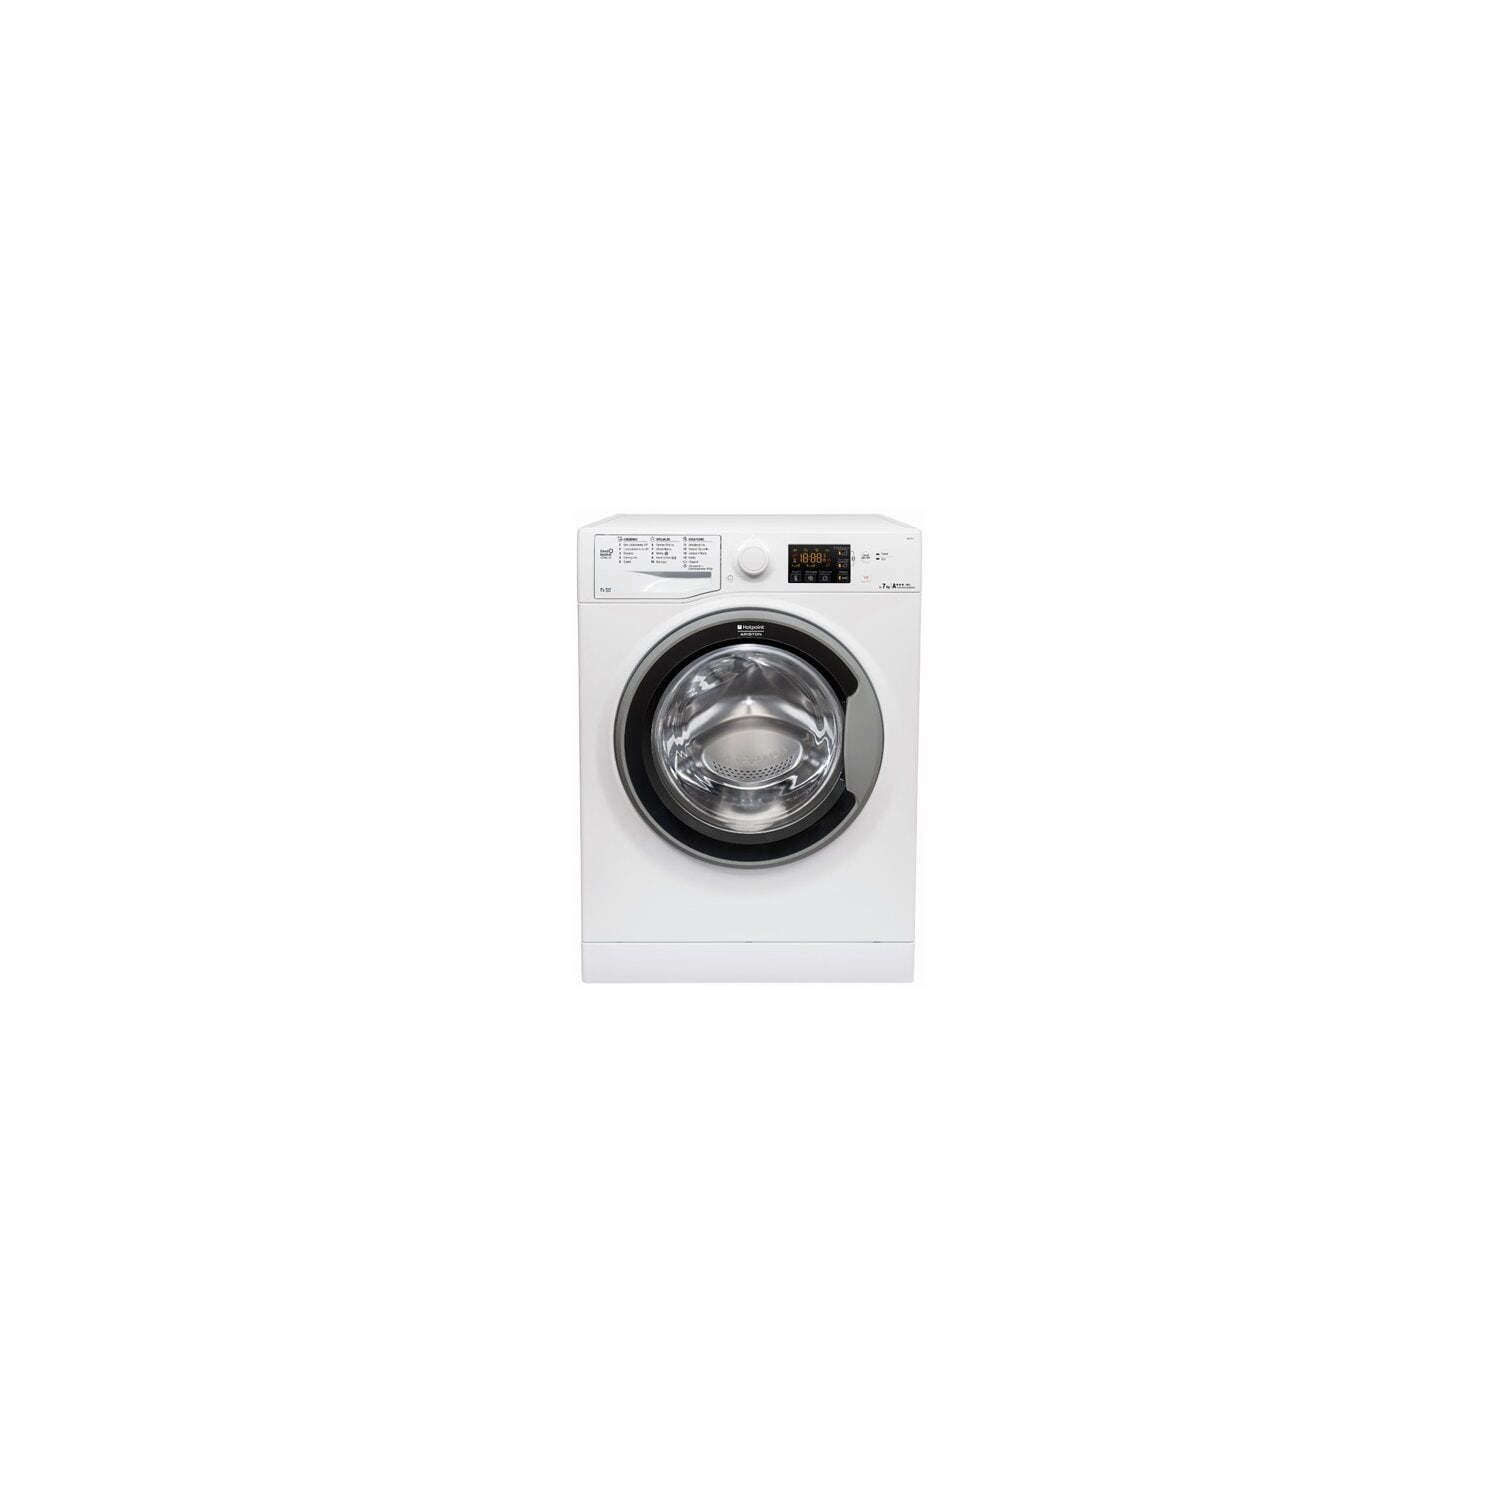 Pralka HOTPOINT-ARISTON RSG 704 JS